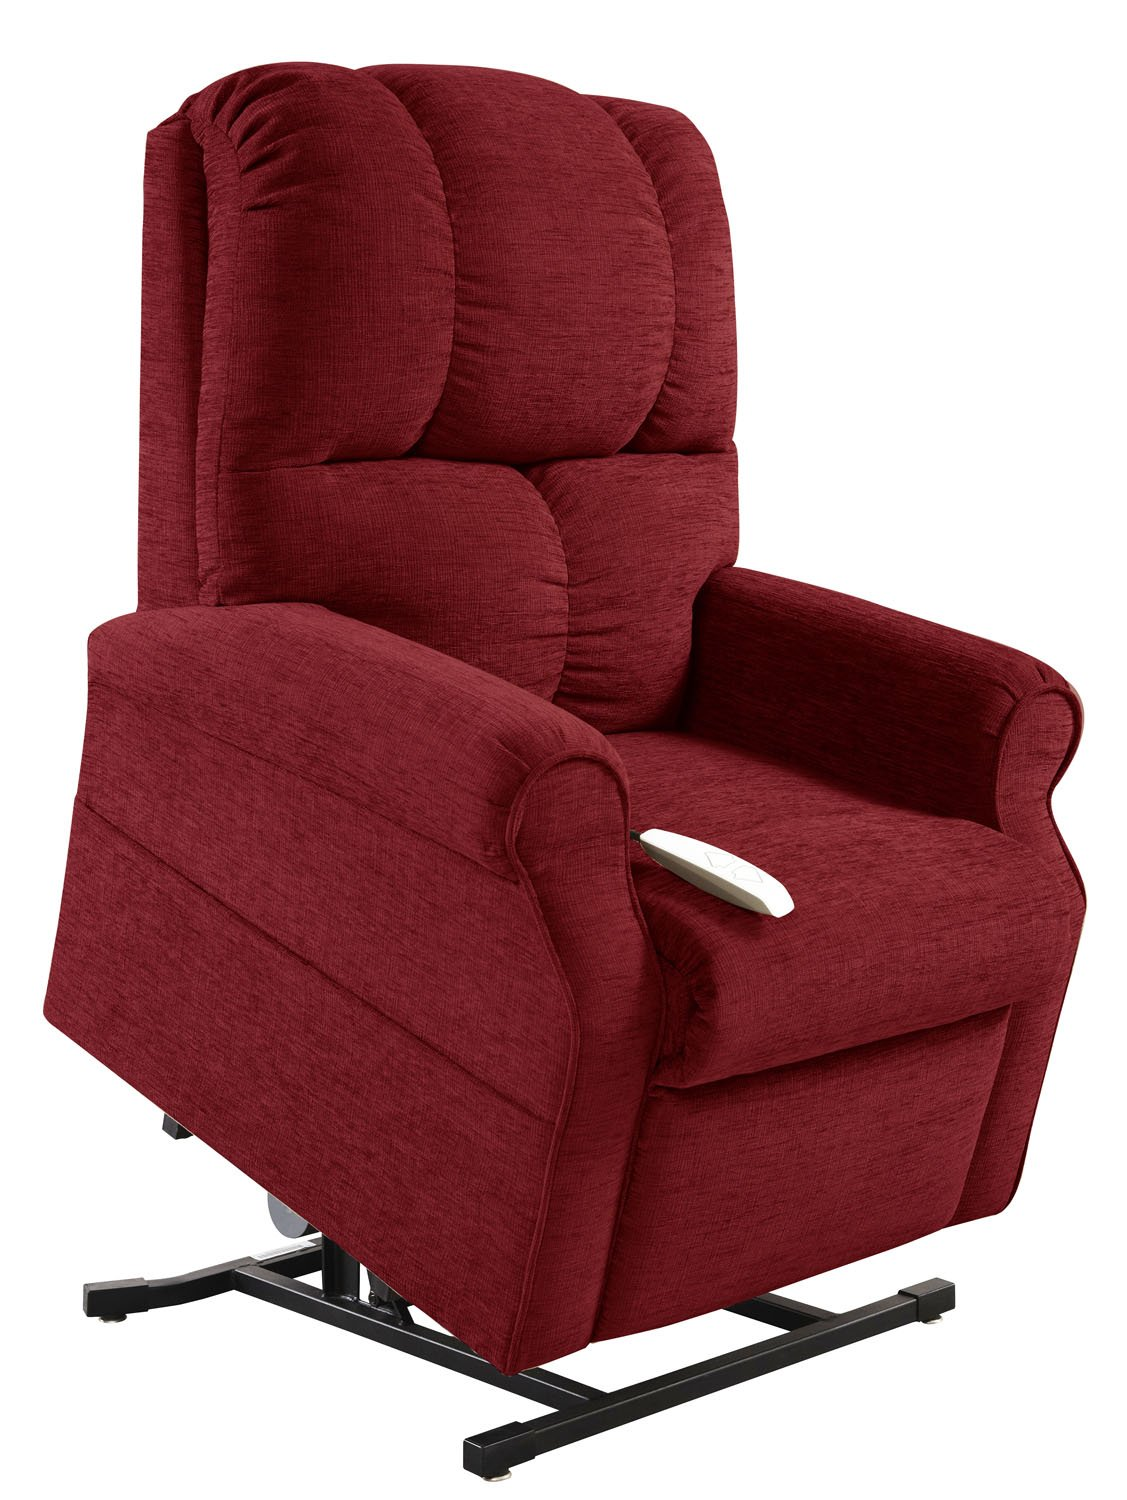 Windermere NM-2001 3 Position Lift Chair - Bordeaux (curbside delivery)